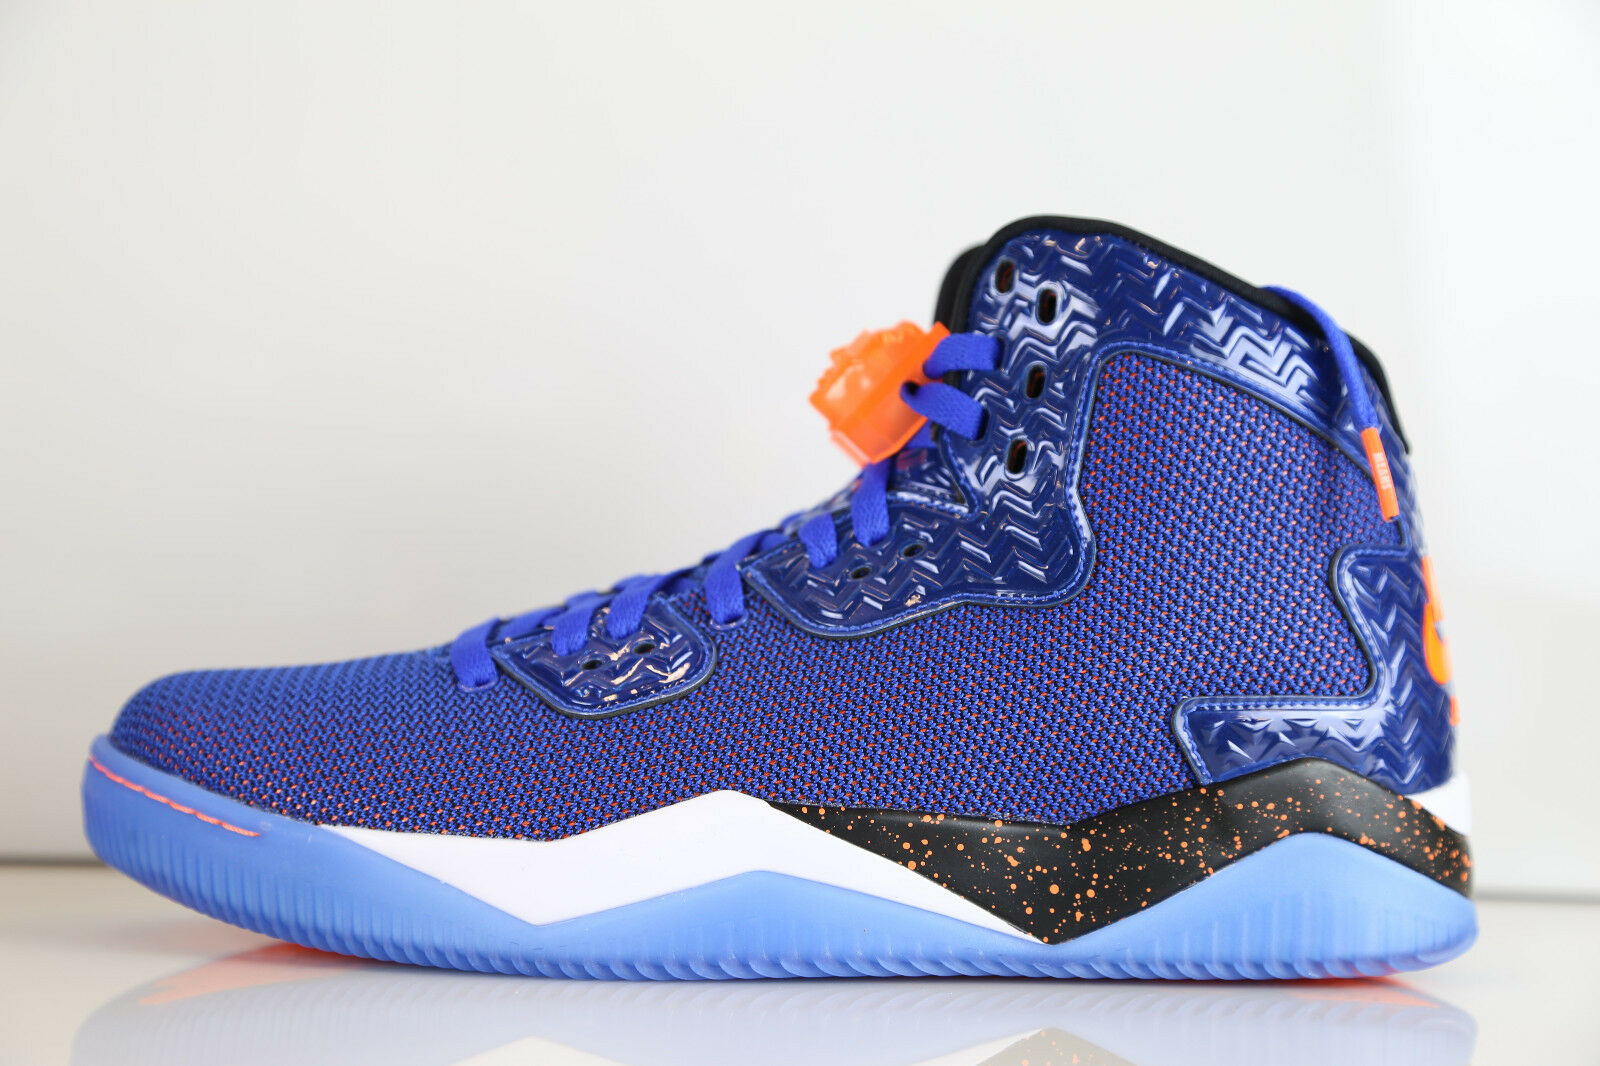 751f3050d03c Nike Air Jordan Jordan Jordan Spike Forty PE Game Royal Orange Knicks  807541-405 7